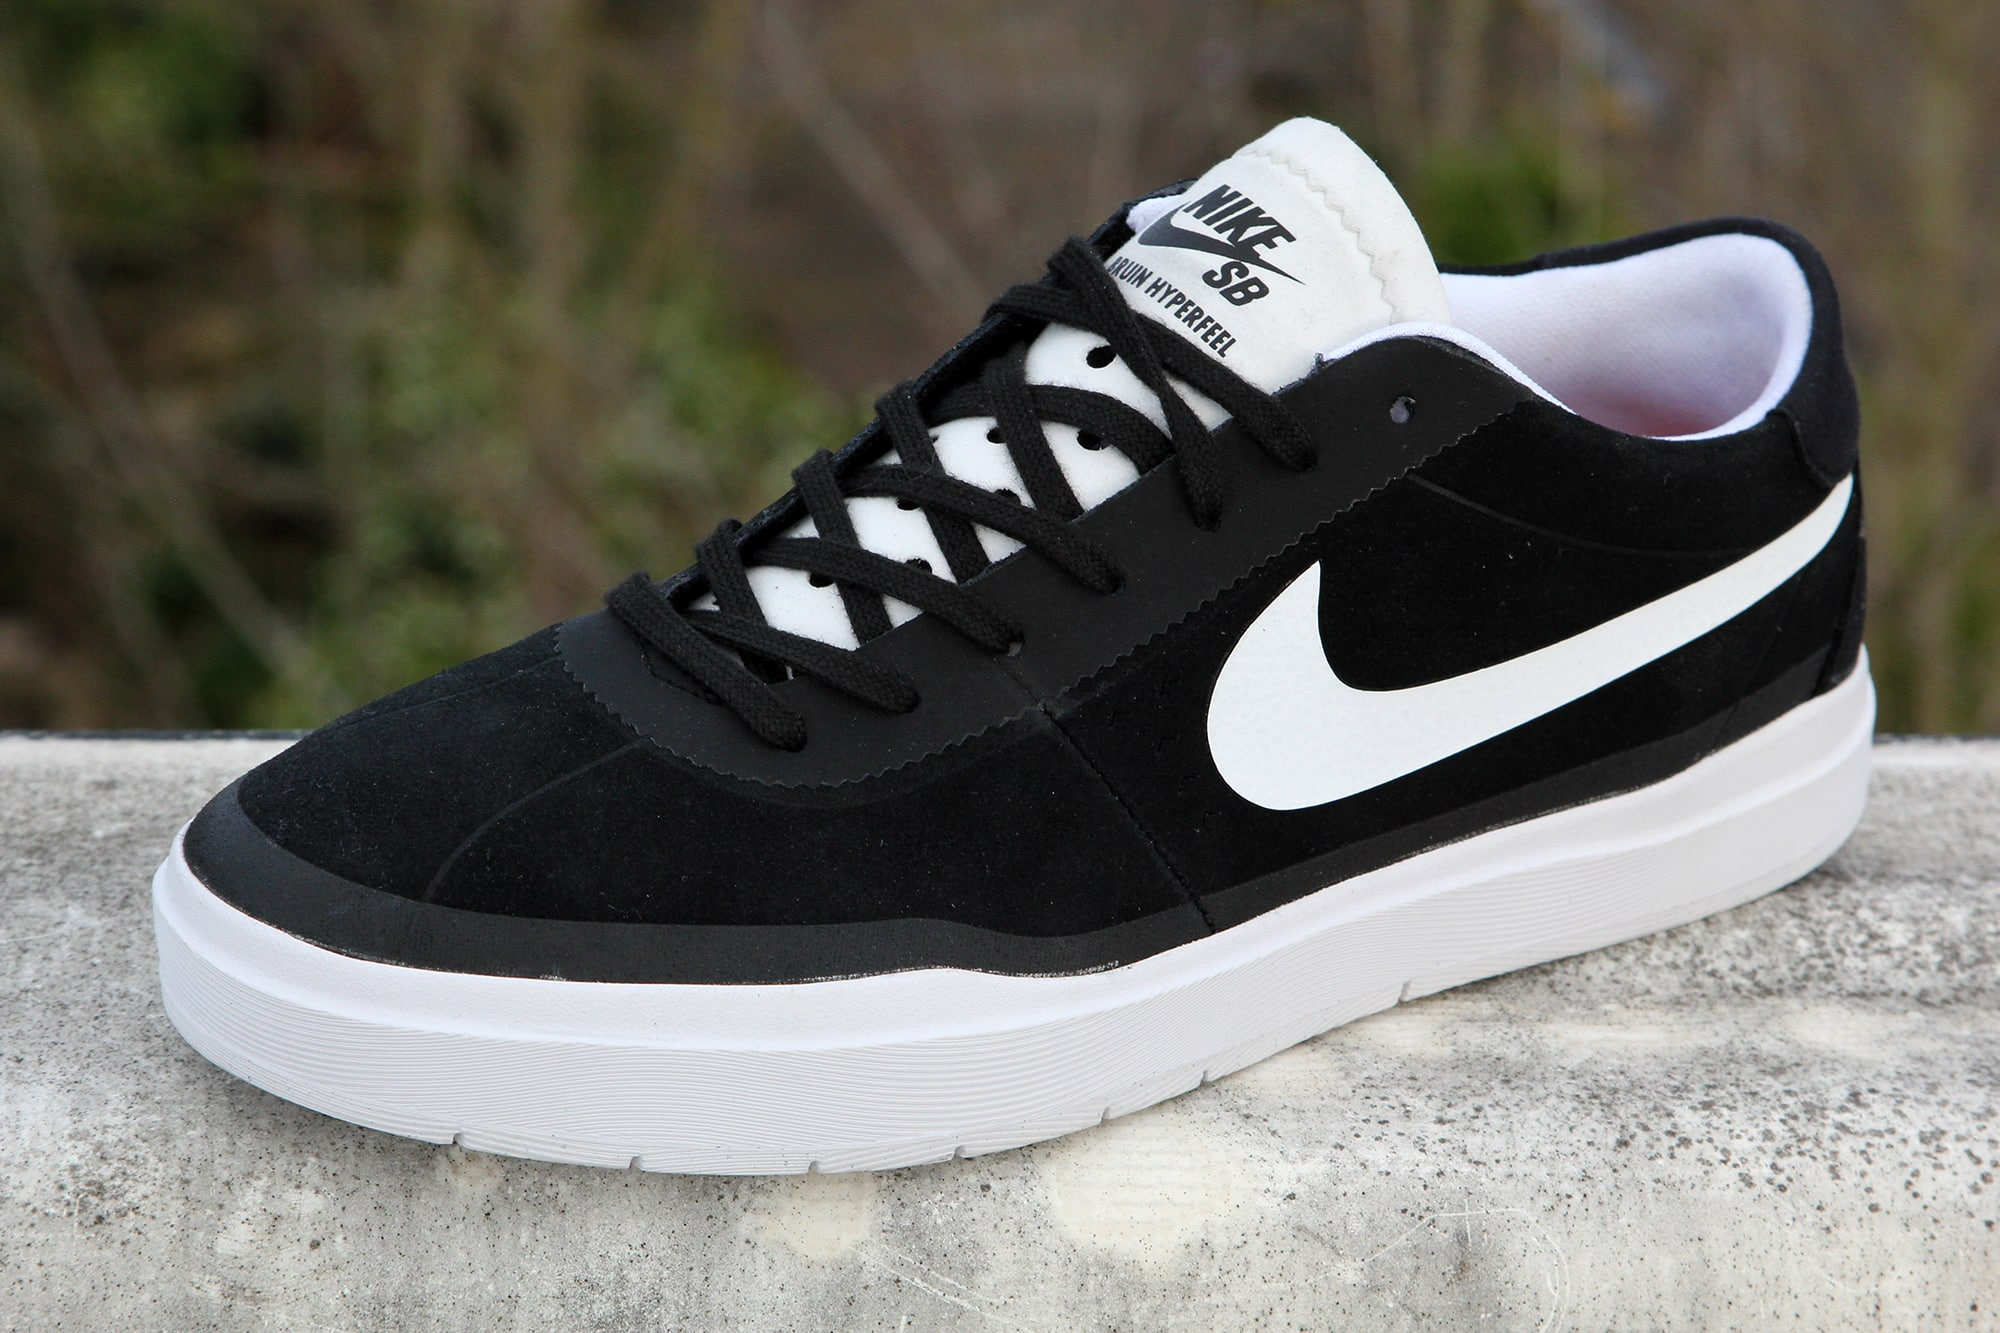 Nike Bruin SB HyperFeel Black White Shoes